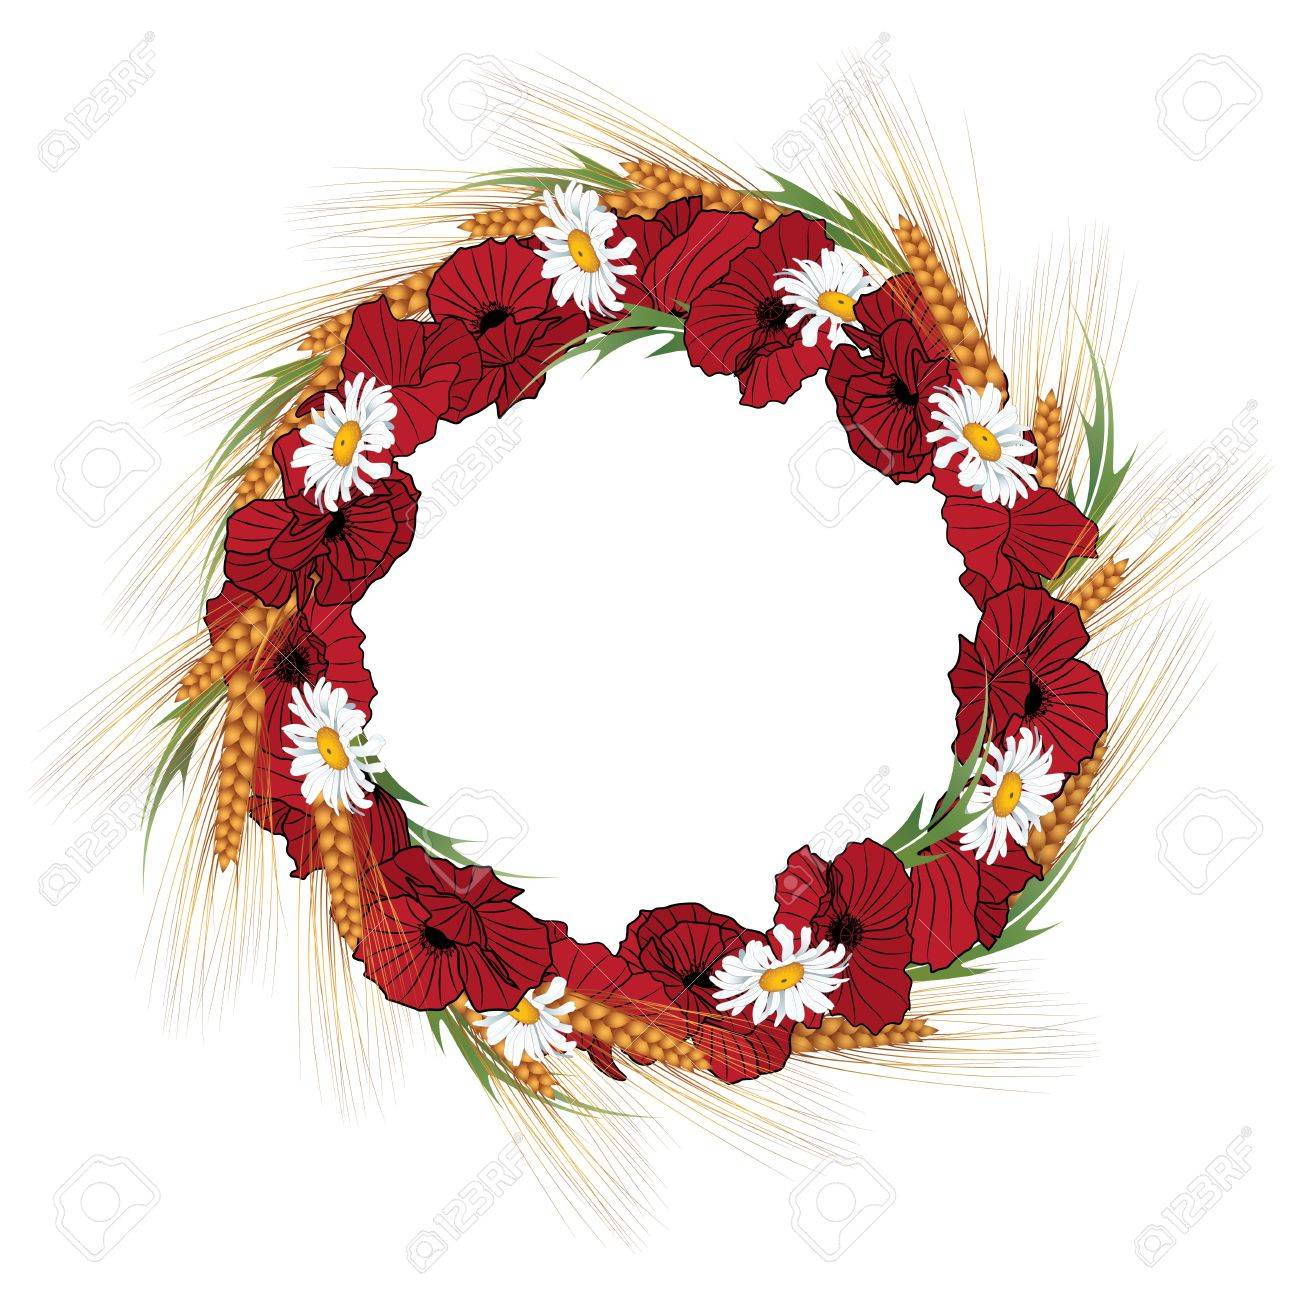 autumnal vector frame with wreath of poppies, daisies and ears of wheat Stock Vector - 9930004